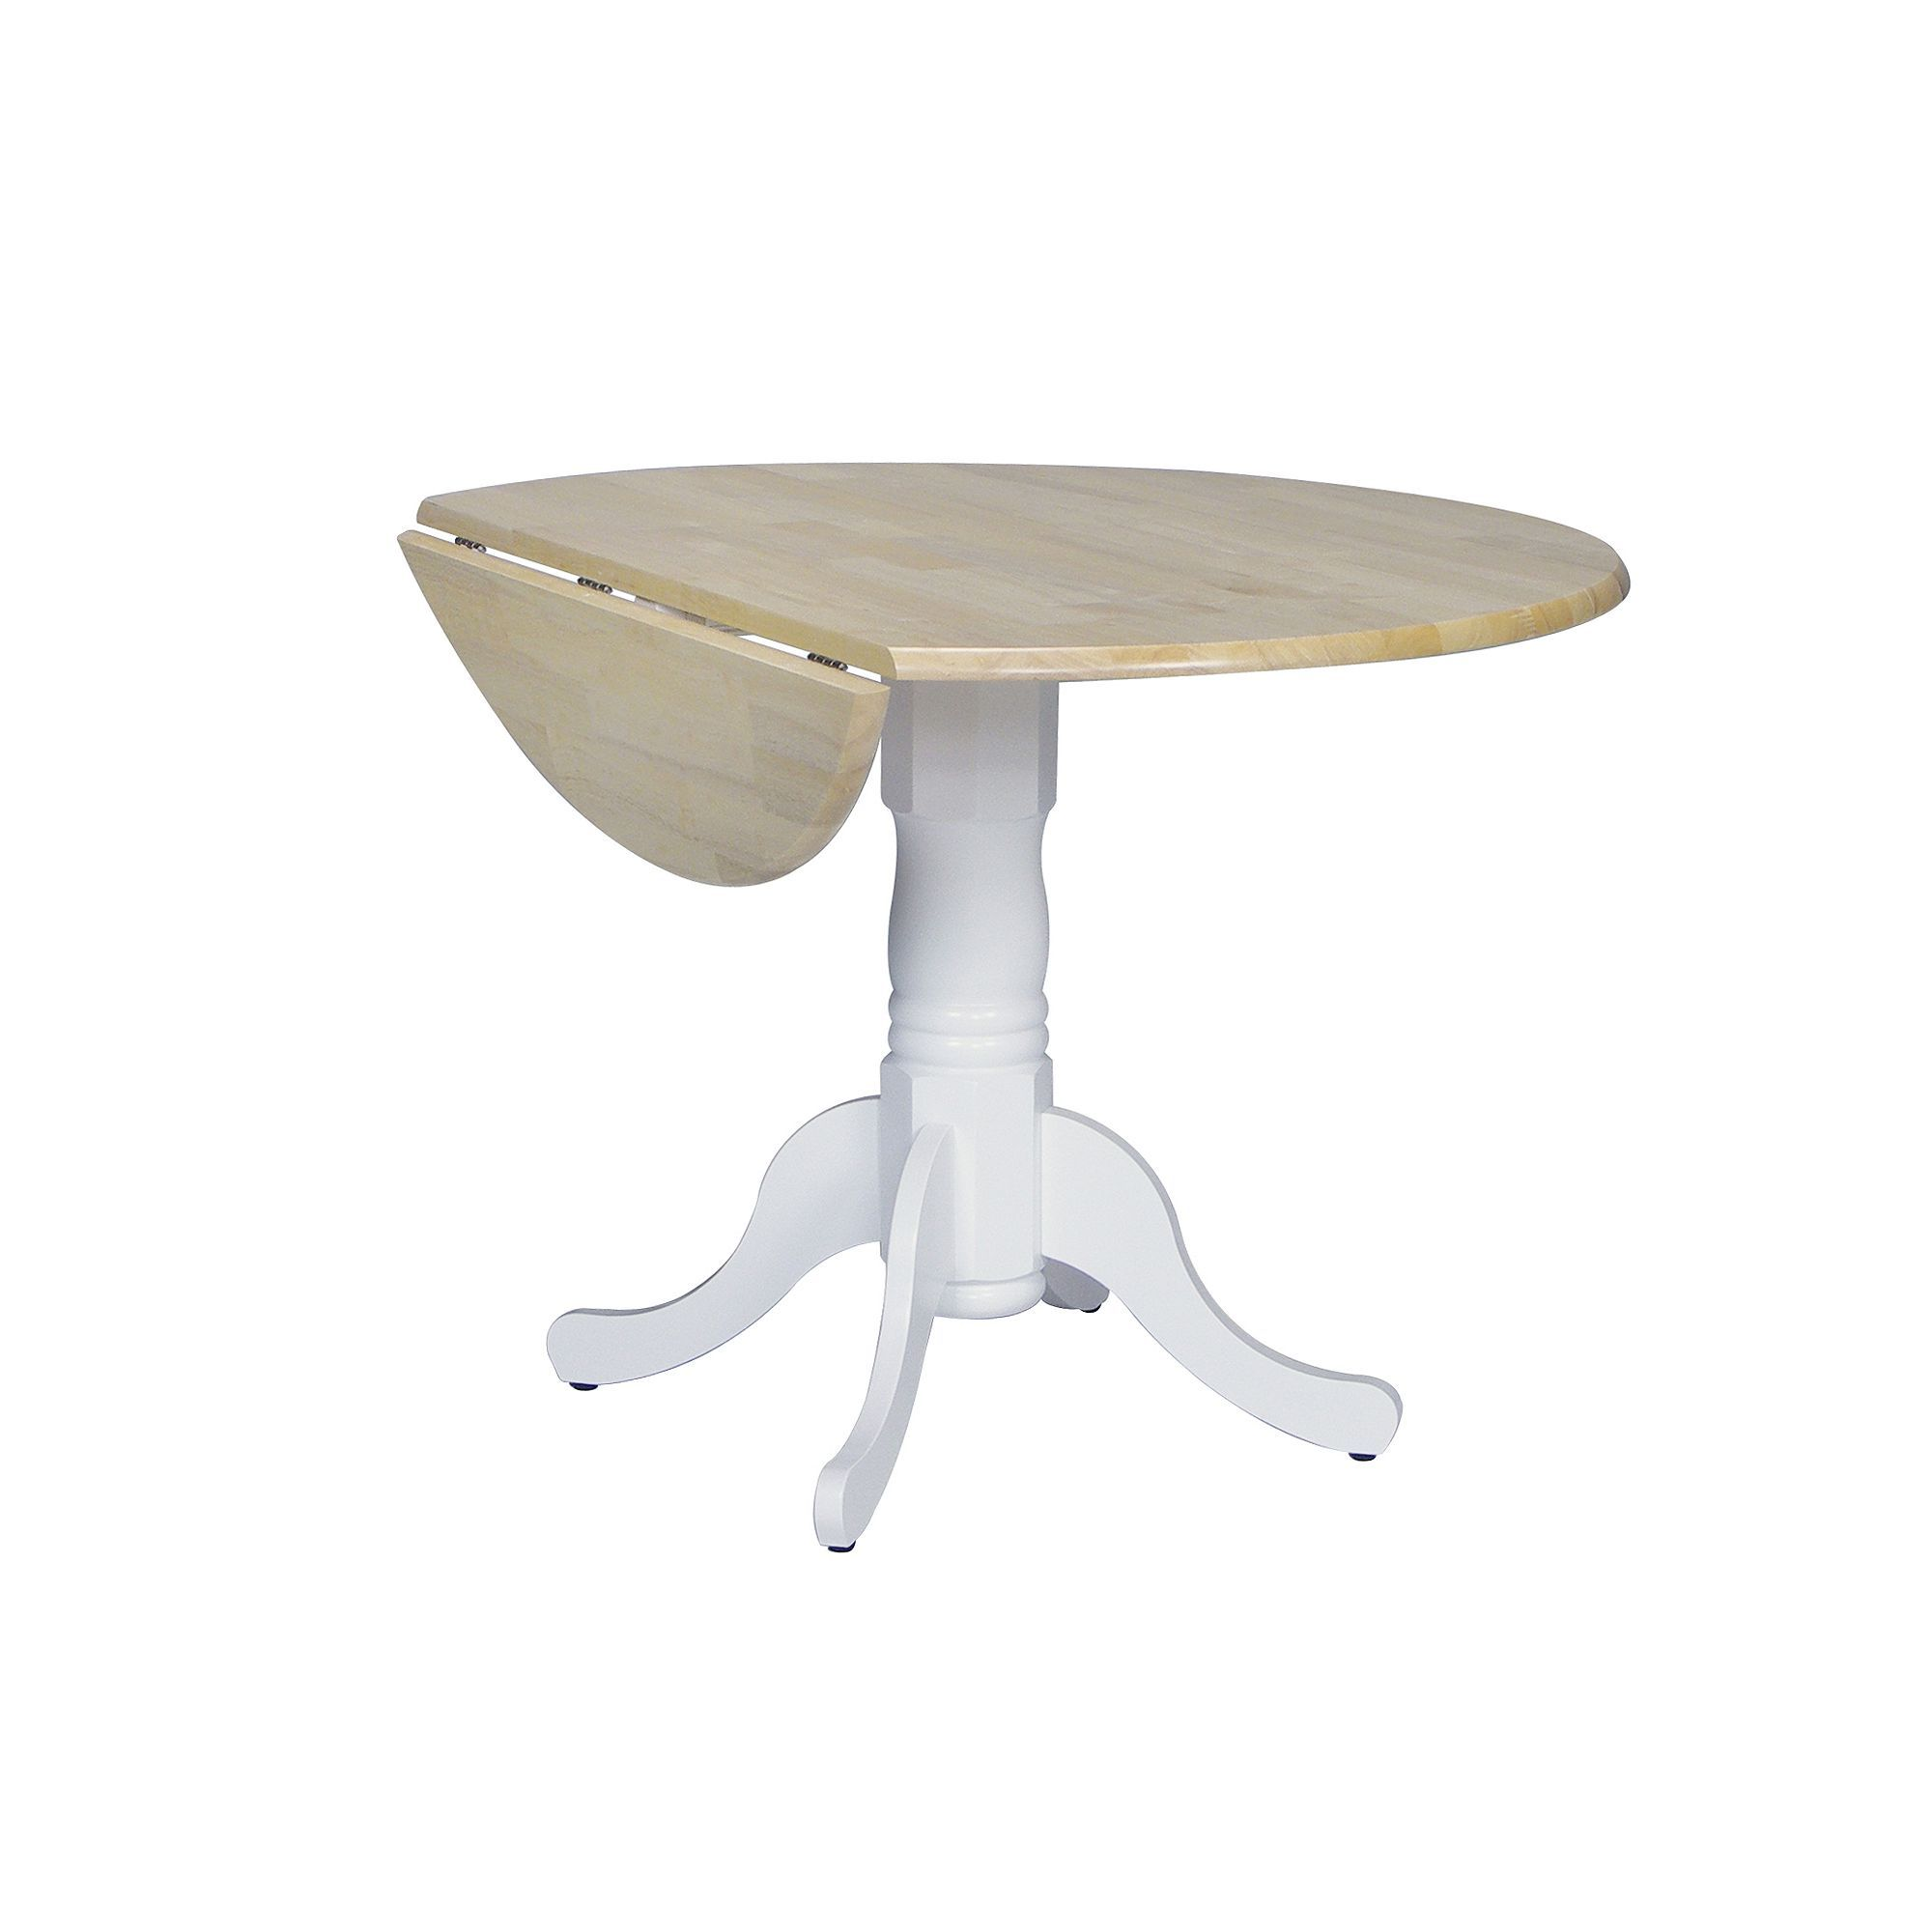 Winsome wood table double drop leaf round mission moon shape fold down - Round Drop Leaf Table Red